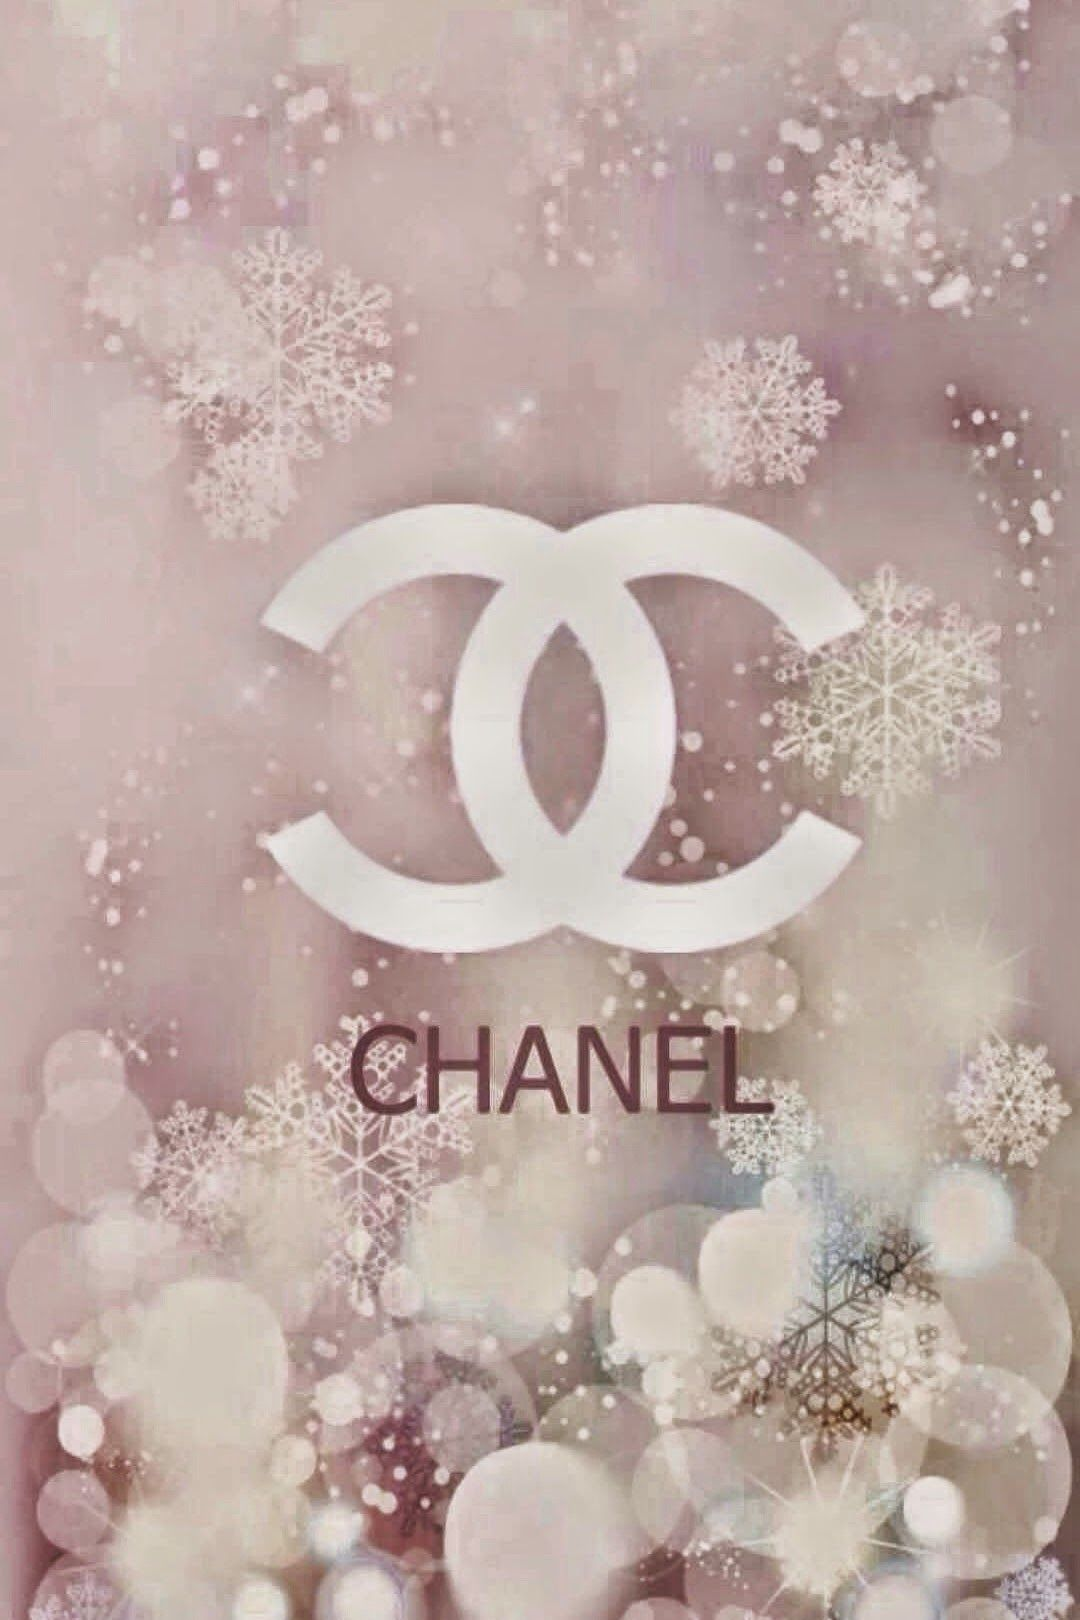 Chanel Wallpaper A CHANEL ALL Pinterest Chanel